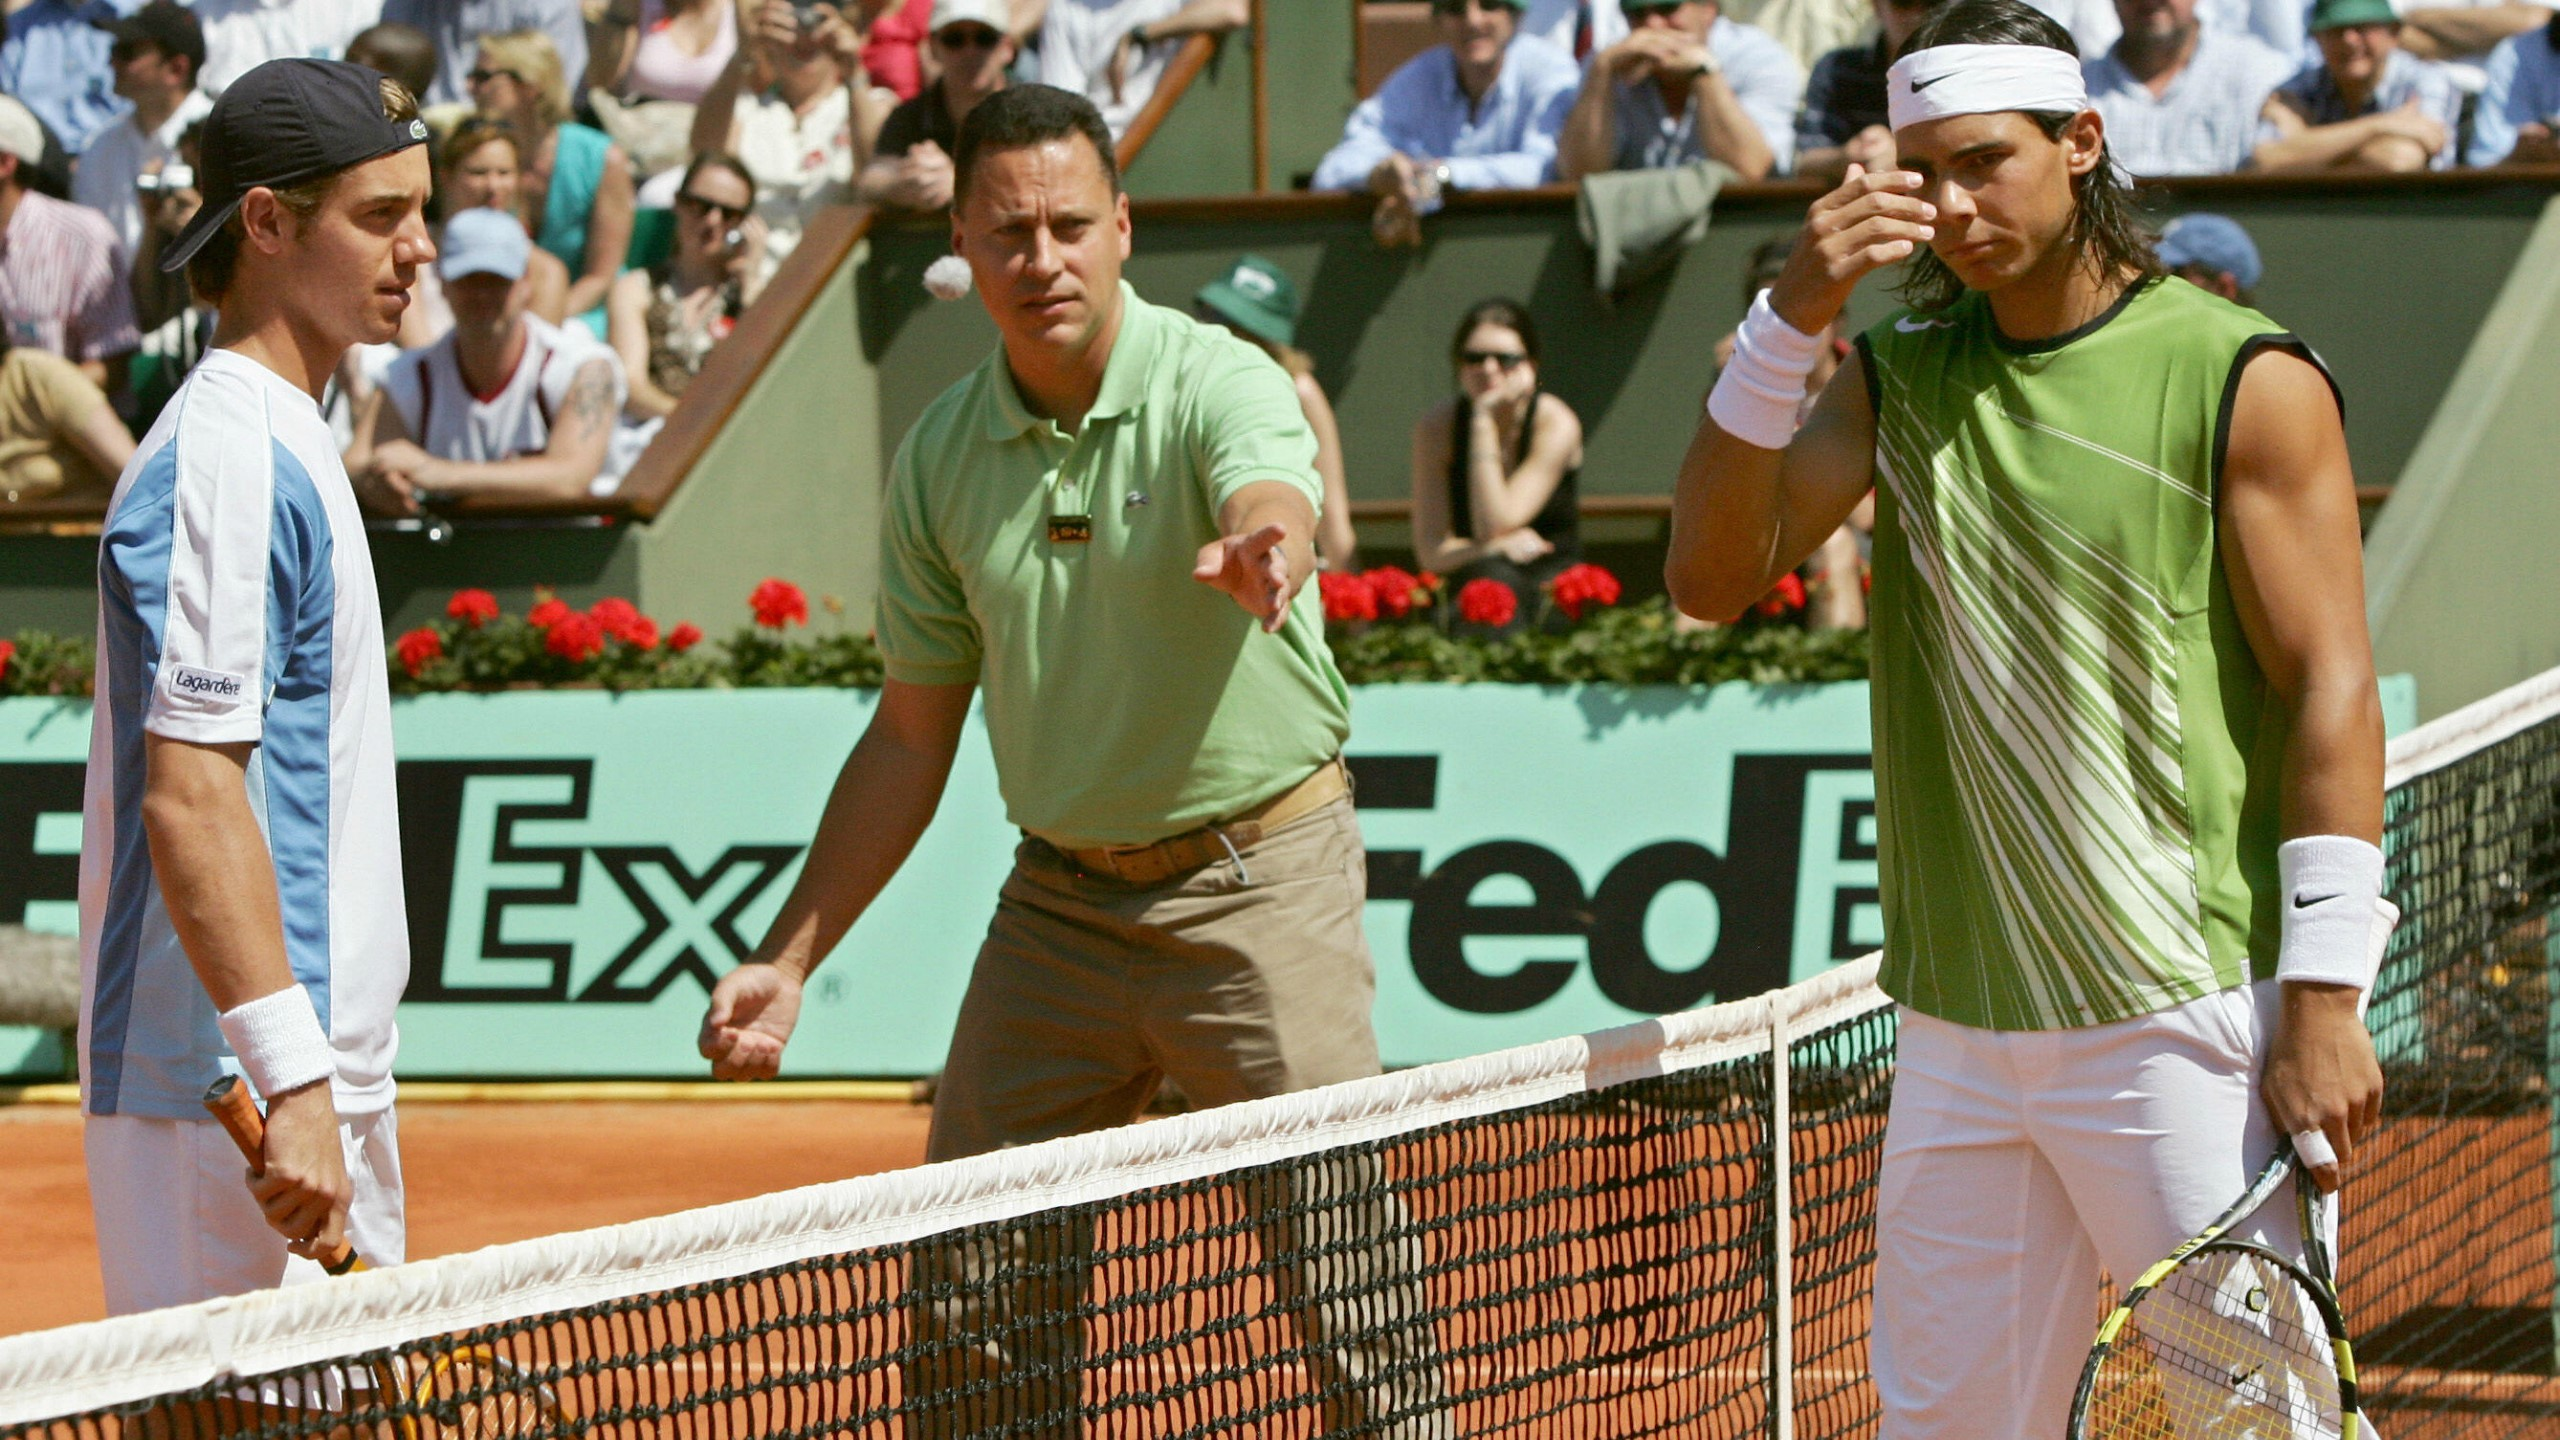 Richard Gasquet and Rafael Nadal, before the third-round match in 2005.